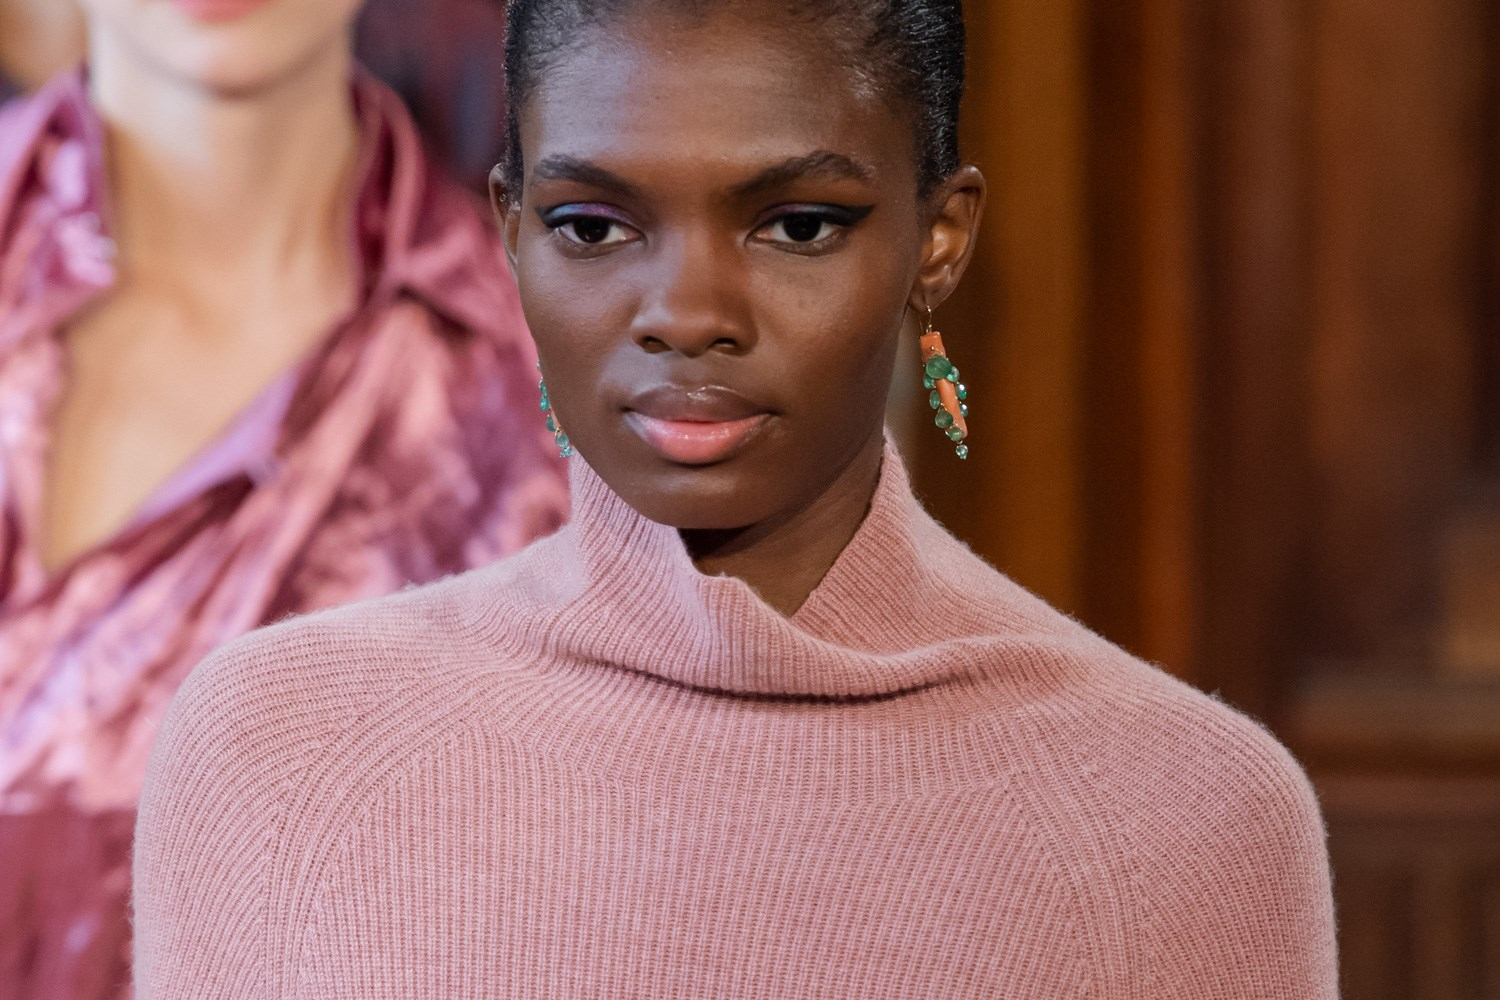 Altuzarra Fall 2020 Fashion Show Photos